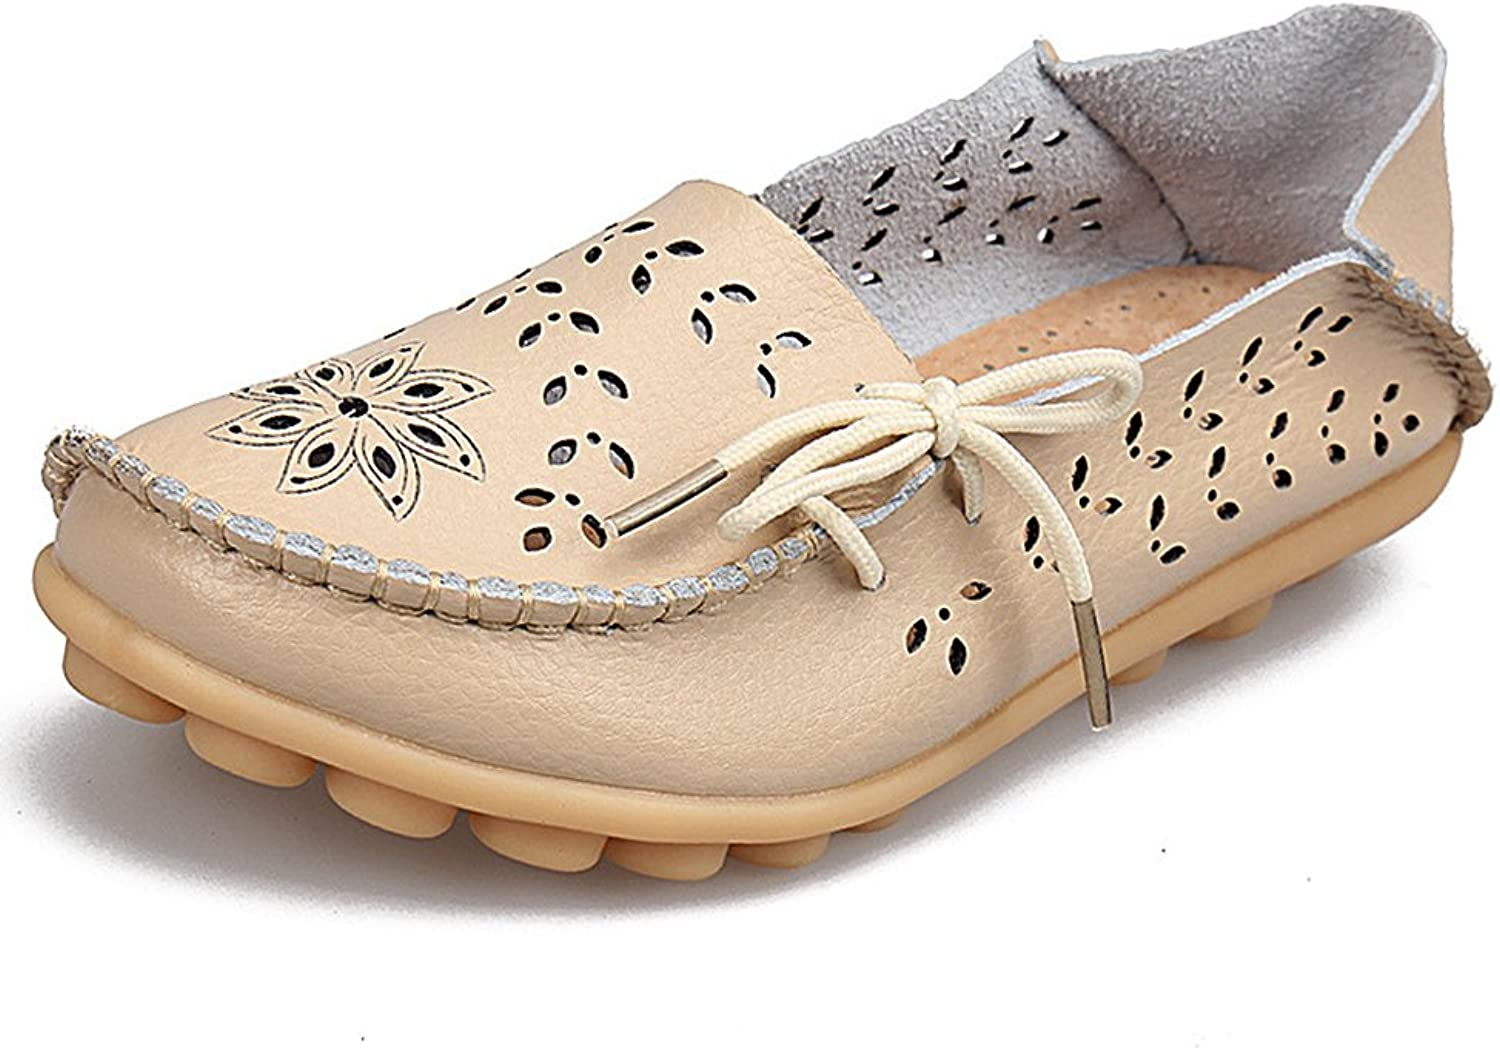 SHIBEVER Women's Leather Loafers Moccasins Wild Driving Casual Flats Oxfords Breathable shoes Beige-2 9